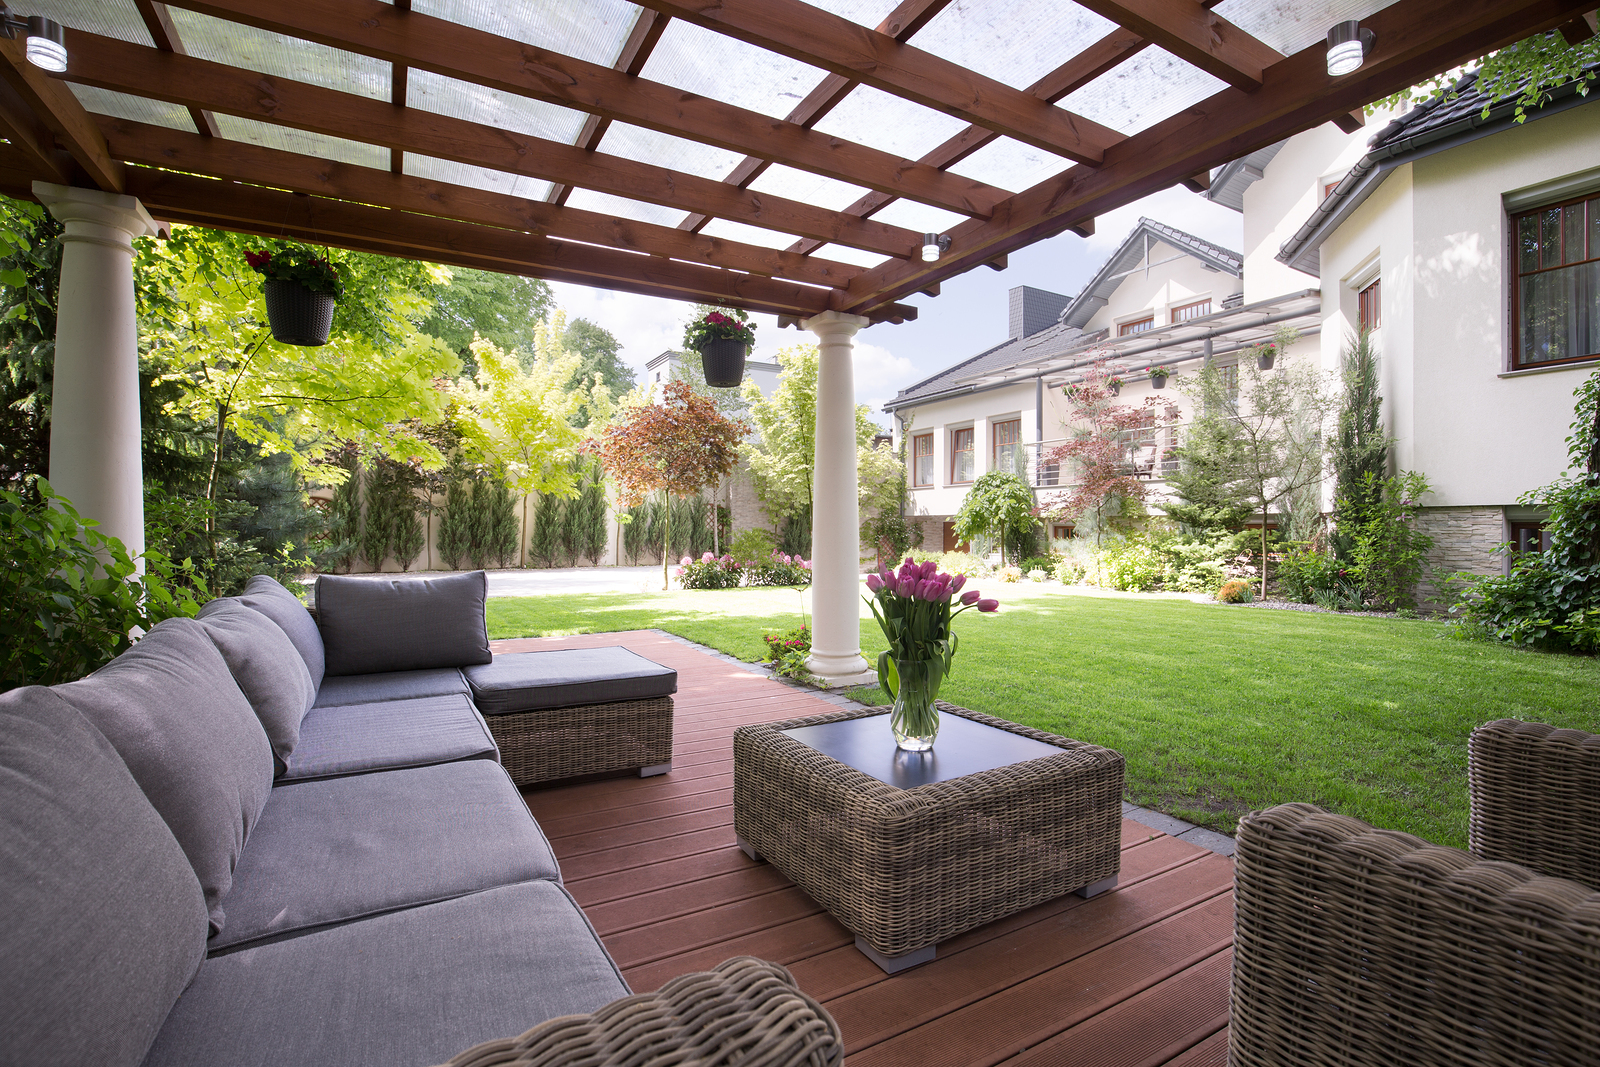 Summer Projects for Creating the Ultimate Backyard: Add Ample Seating